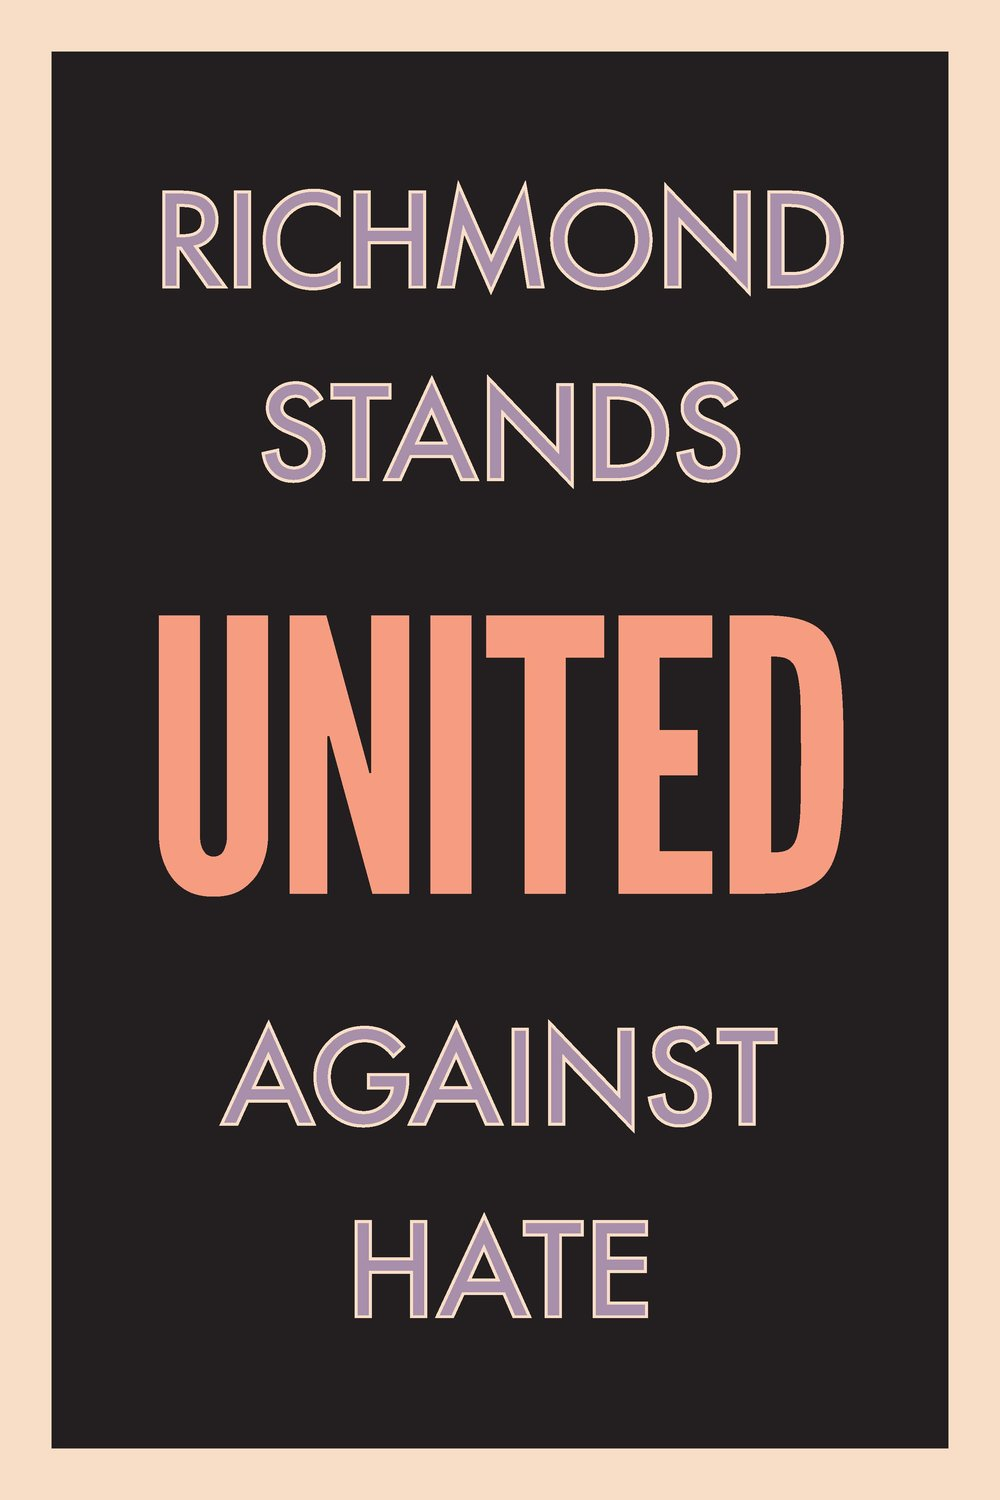 RichmondUnited_19x12.5.jpg